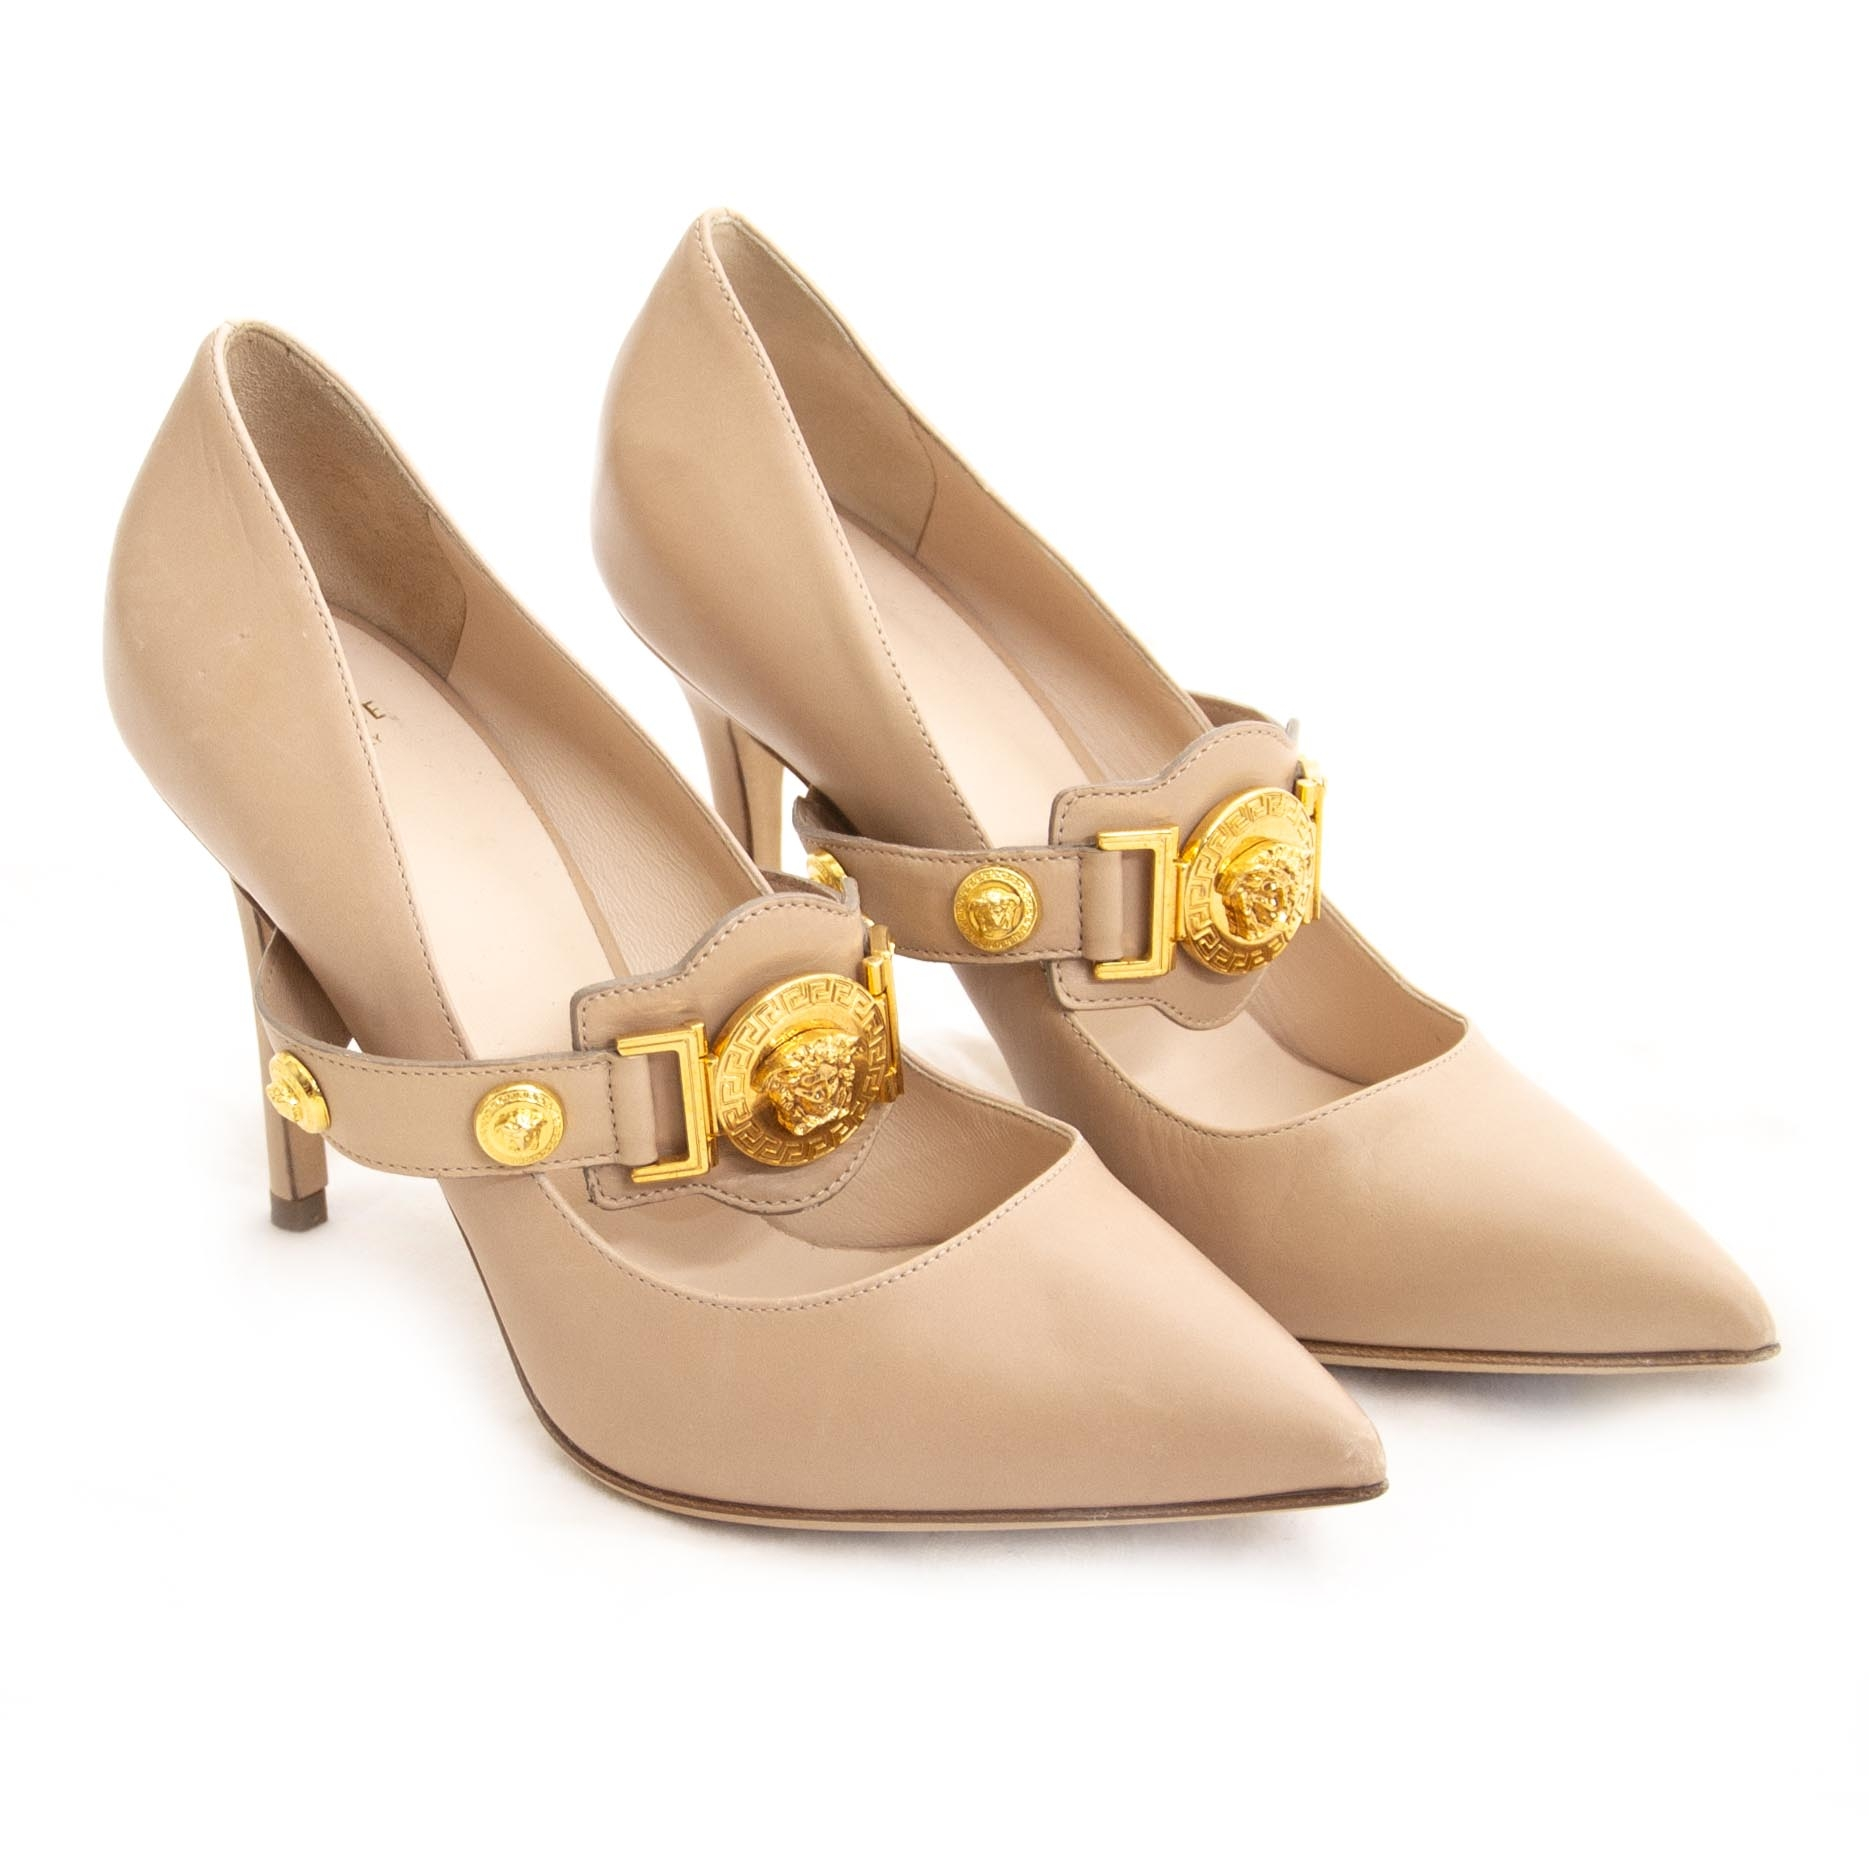 Versace Nude Medusa Pump - 37,5 (Labellov). For the best price at LabelLov. Pour le meilleur prix à LabelLOV. Voor de beste prijs bij LabelLOV.